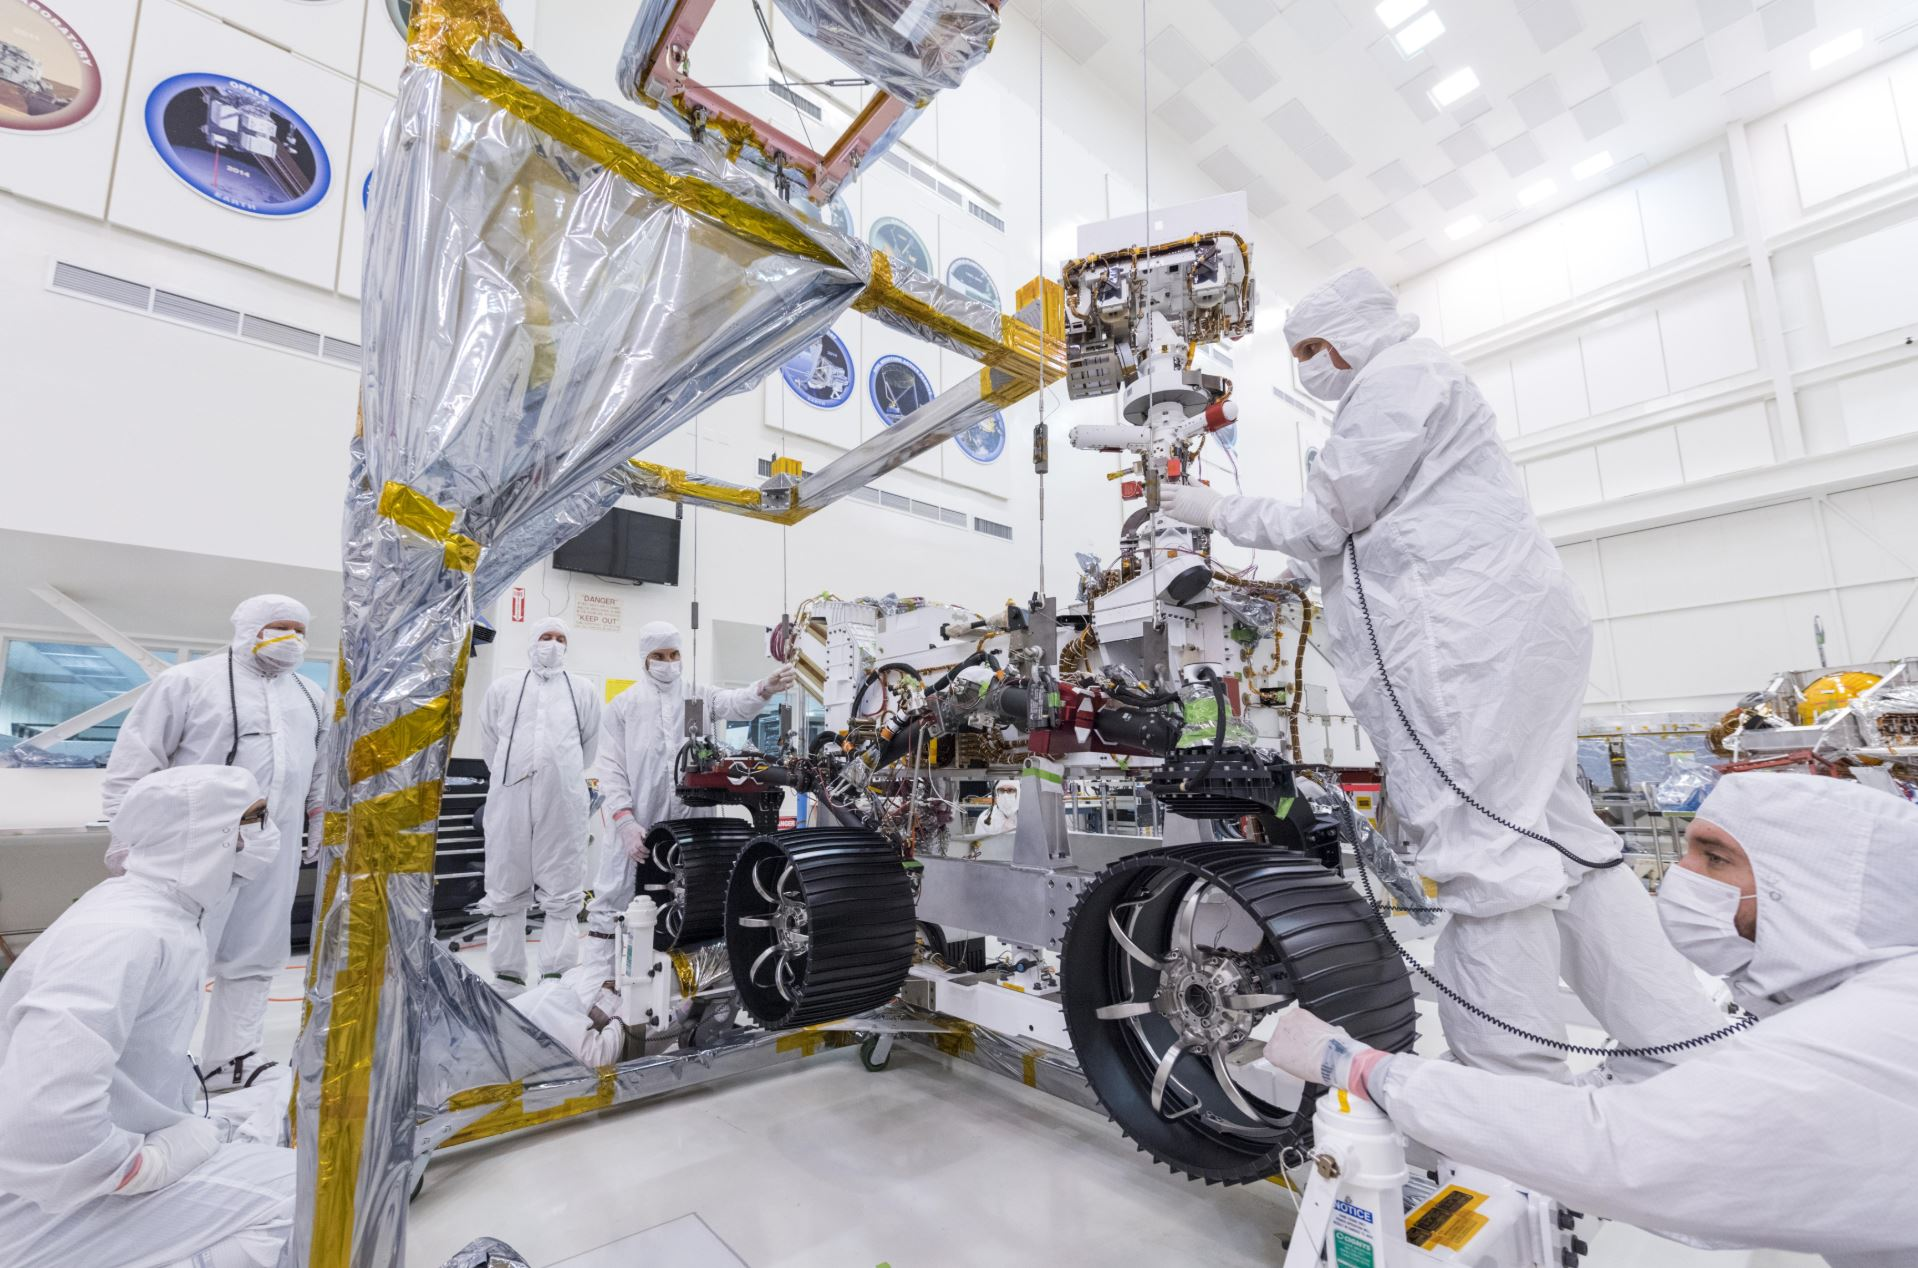 In this image, taken on June 13, 2019, engineers at JPL install the starboard legs and wheels - otherwise known as the mobility suspension - on the Mars 2020 rover. Credit: NASA/JPL-Caltech - Image credit: NASA/JPL-Caltech